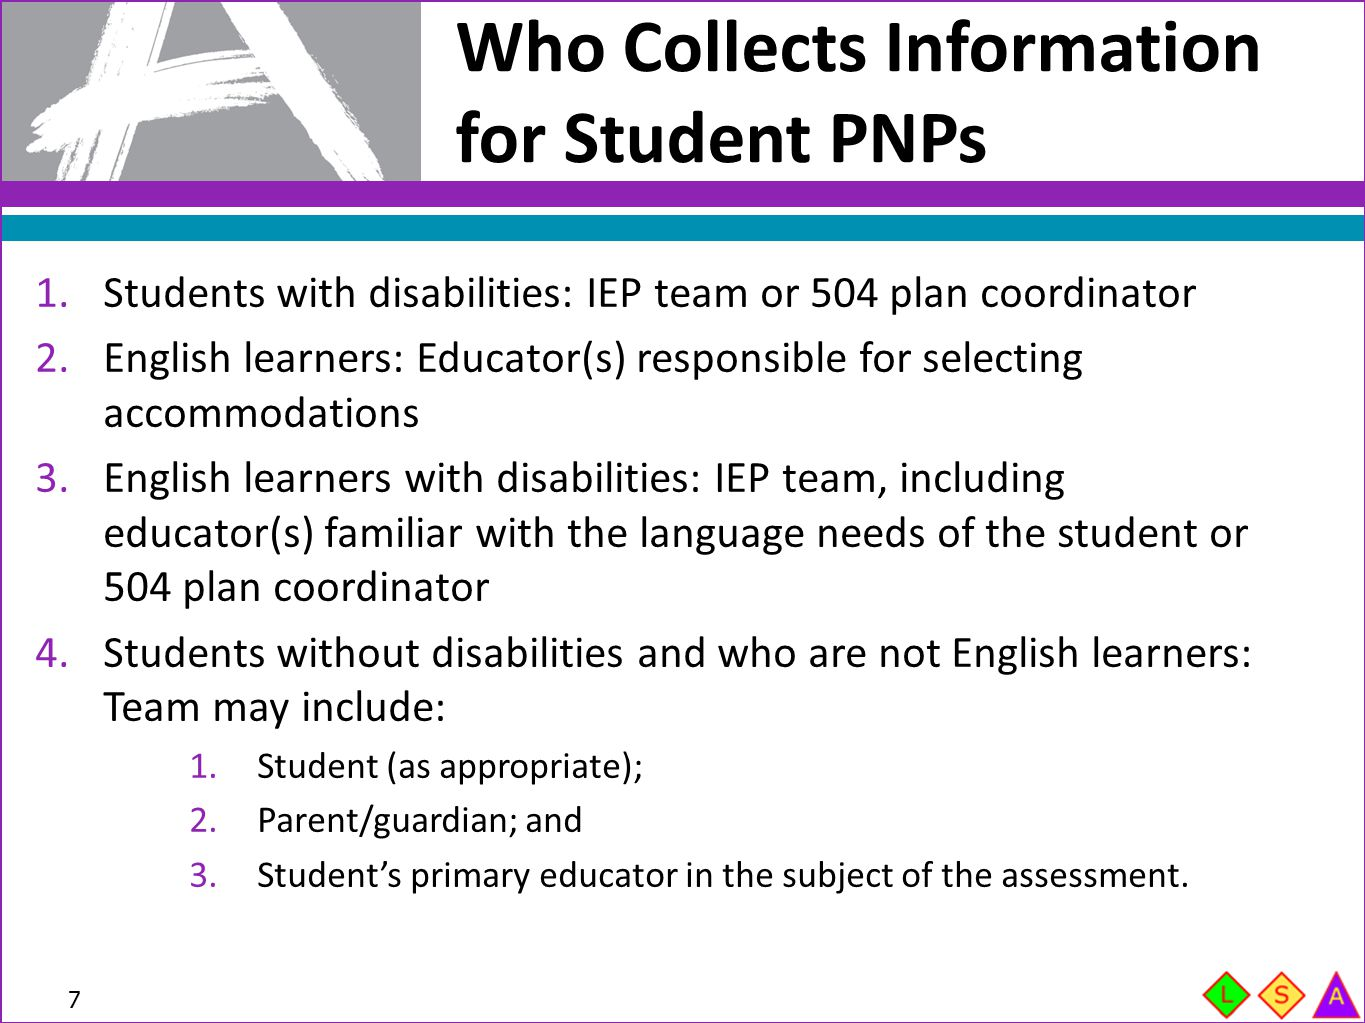 Who Collects Information for Student PNPs